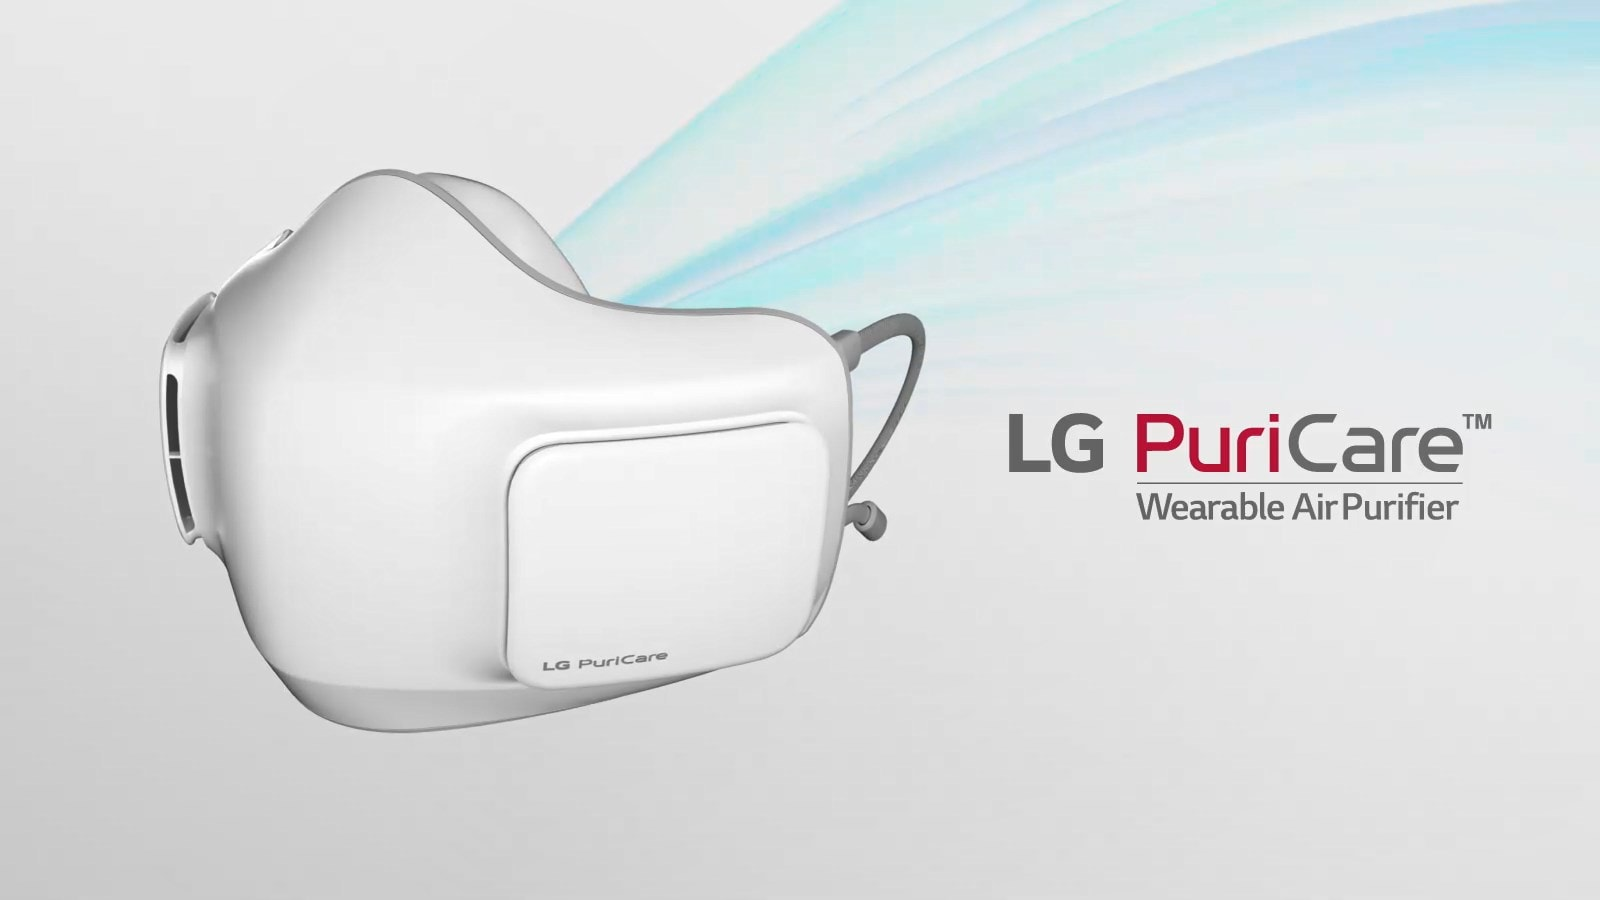 The LG Puricare Wearable Air Purifier is shown at an angle with the outside facing front. Blue streaks shoot from the inside of the Wearable Air Purifier backwards.